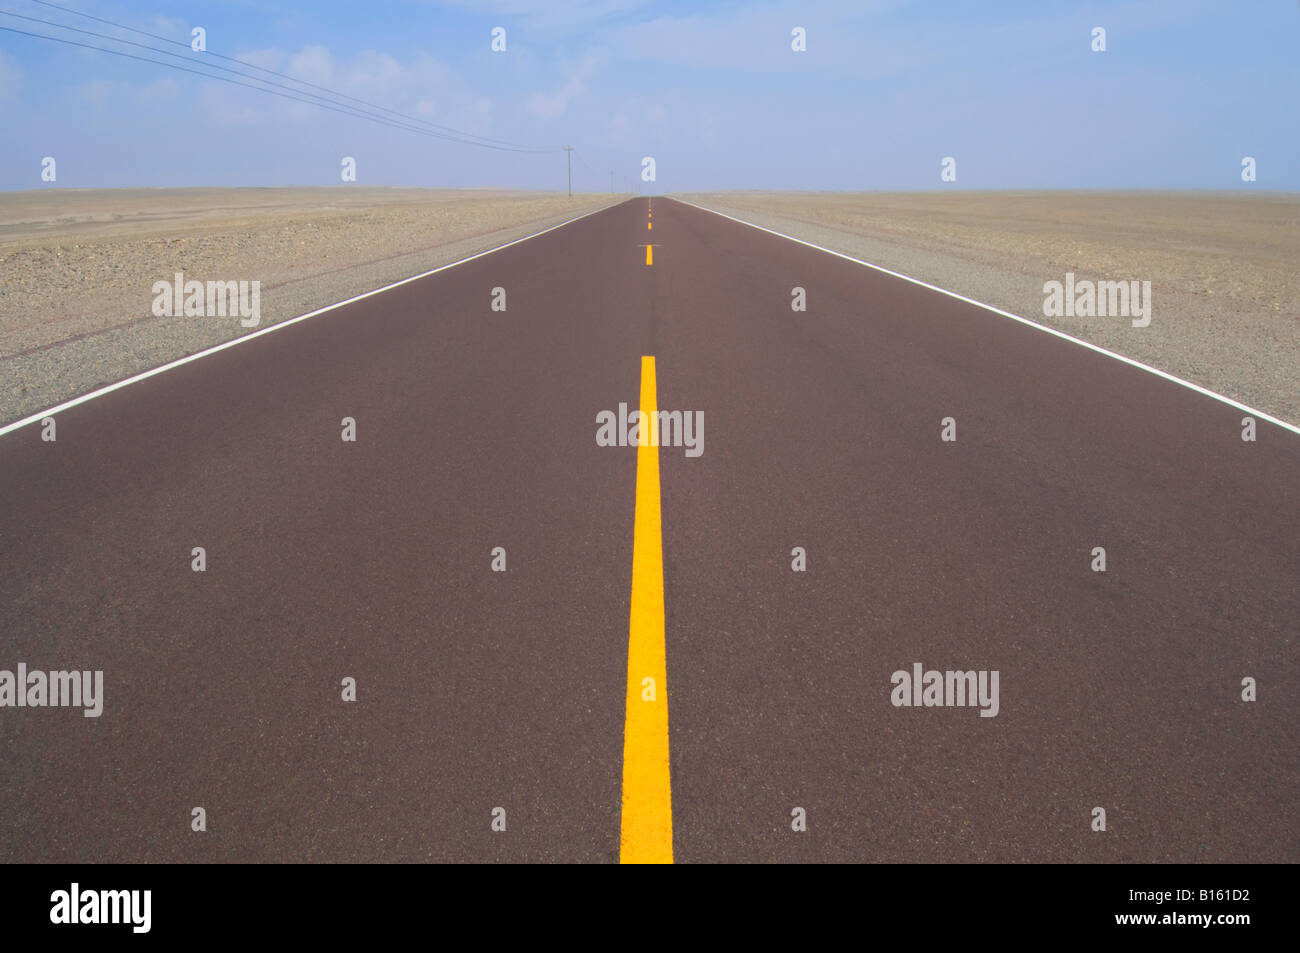 Part of the Pan American Highway in the desert centered and leading off to the distance with yellow dividing lines - Stock Image